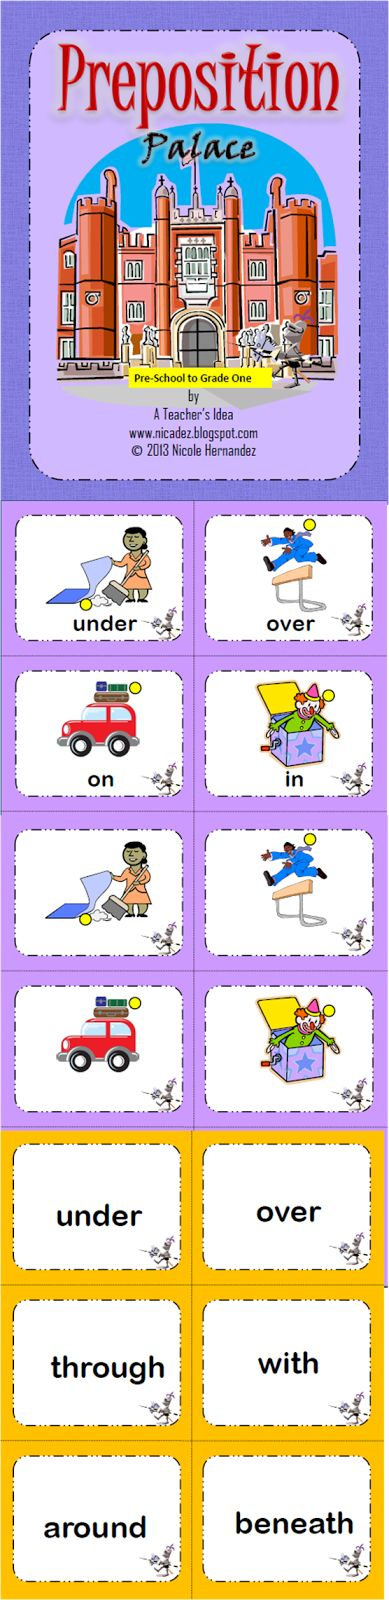 28 best Preposition activities images on Pinterest ...